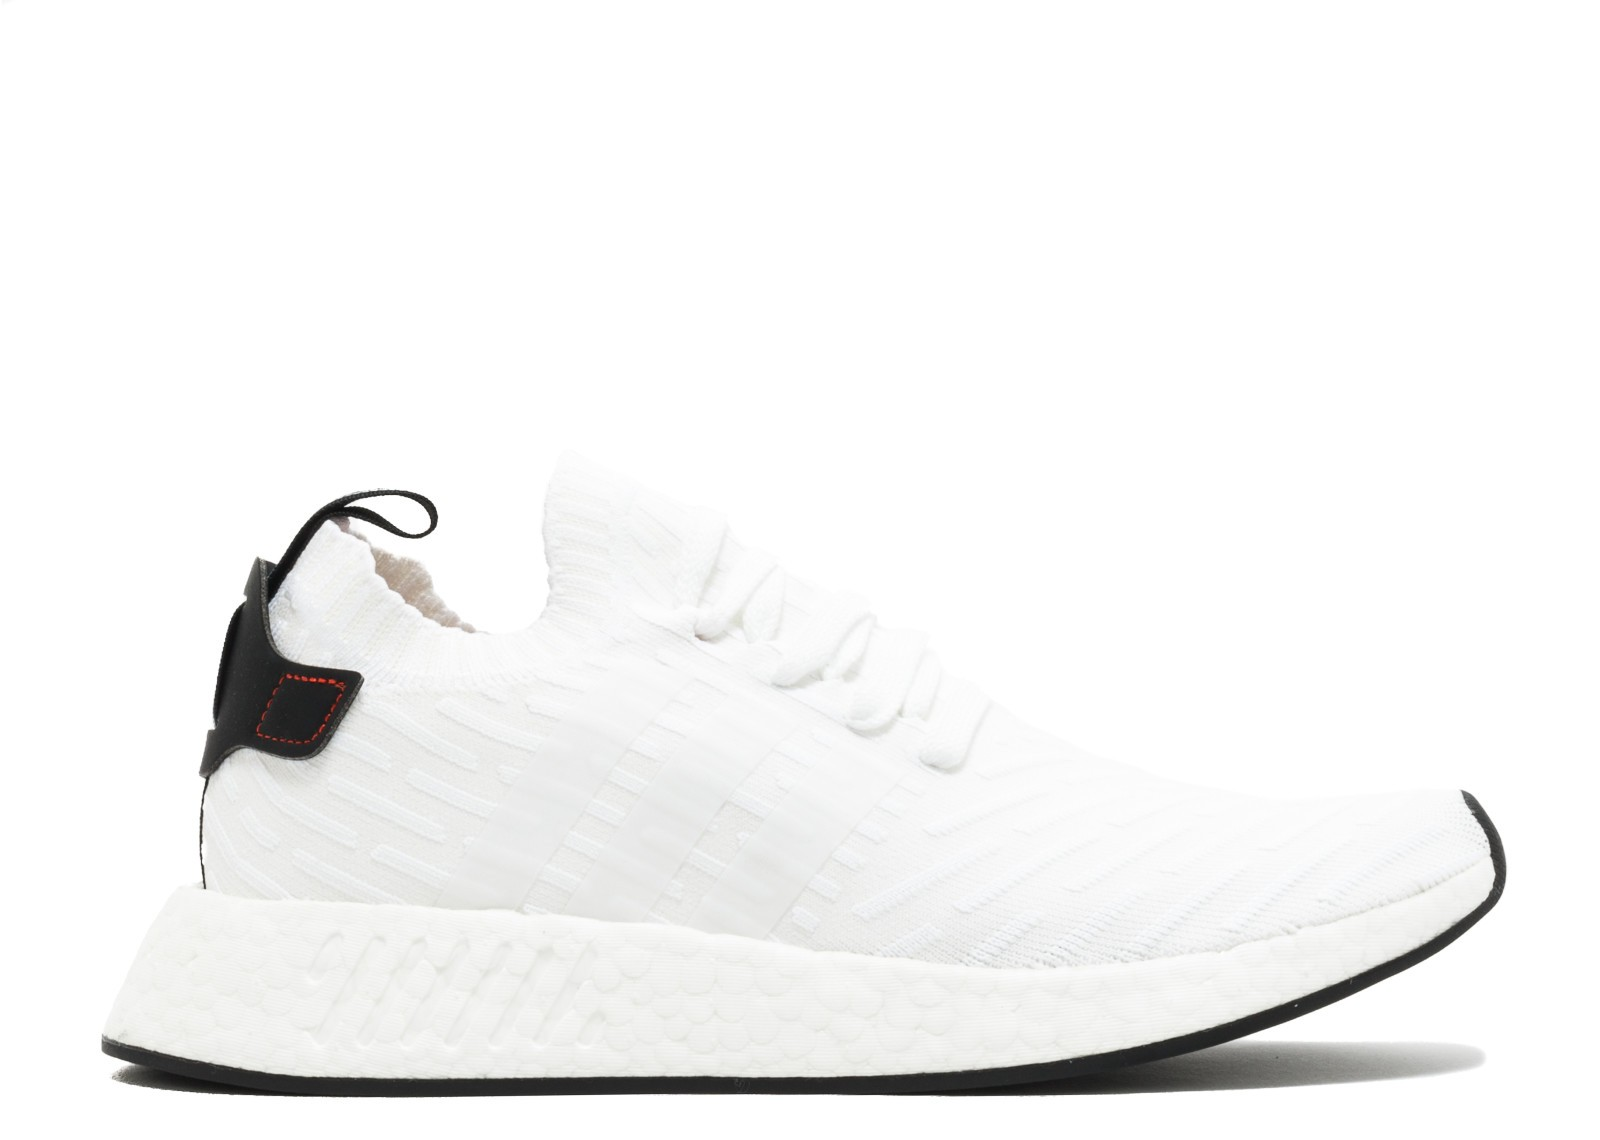 Adidas NMD R2 White Black BY3015